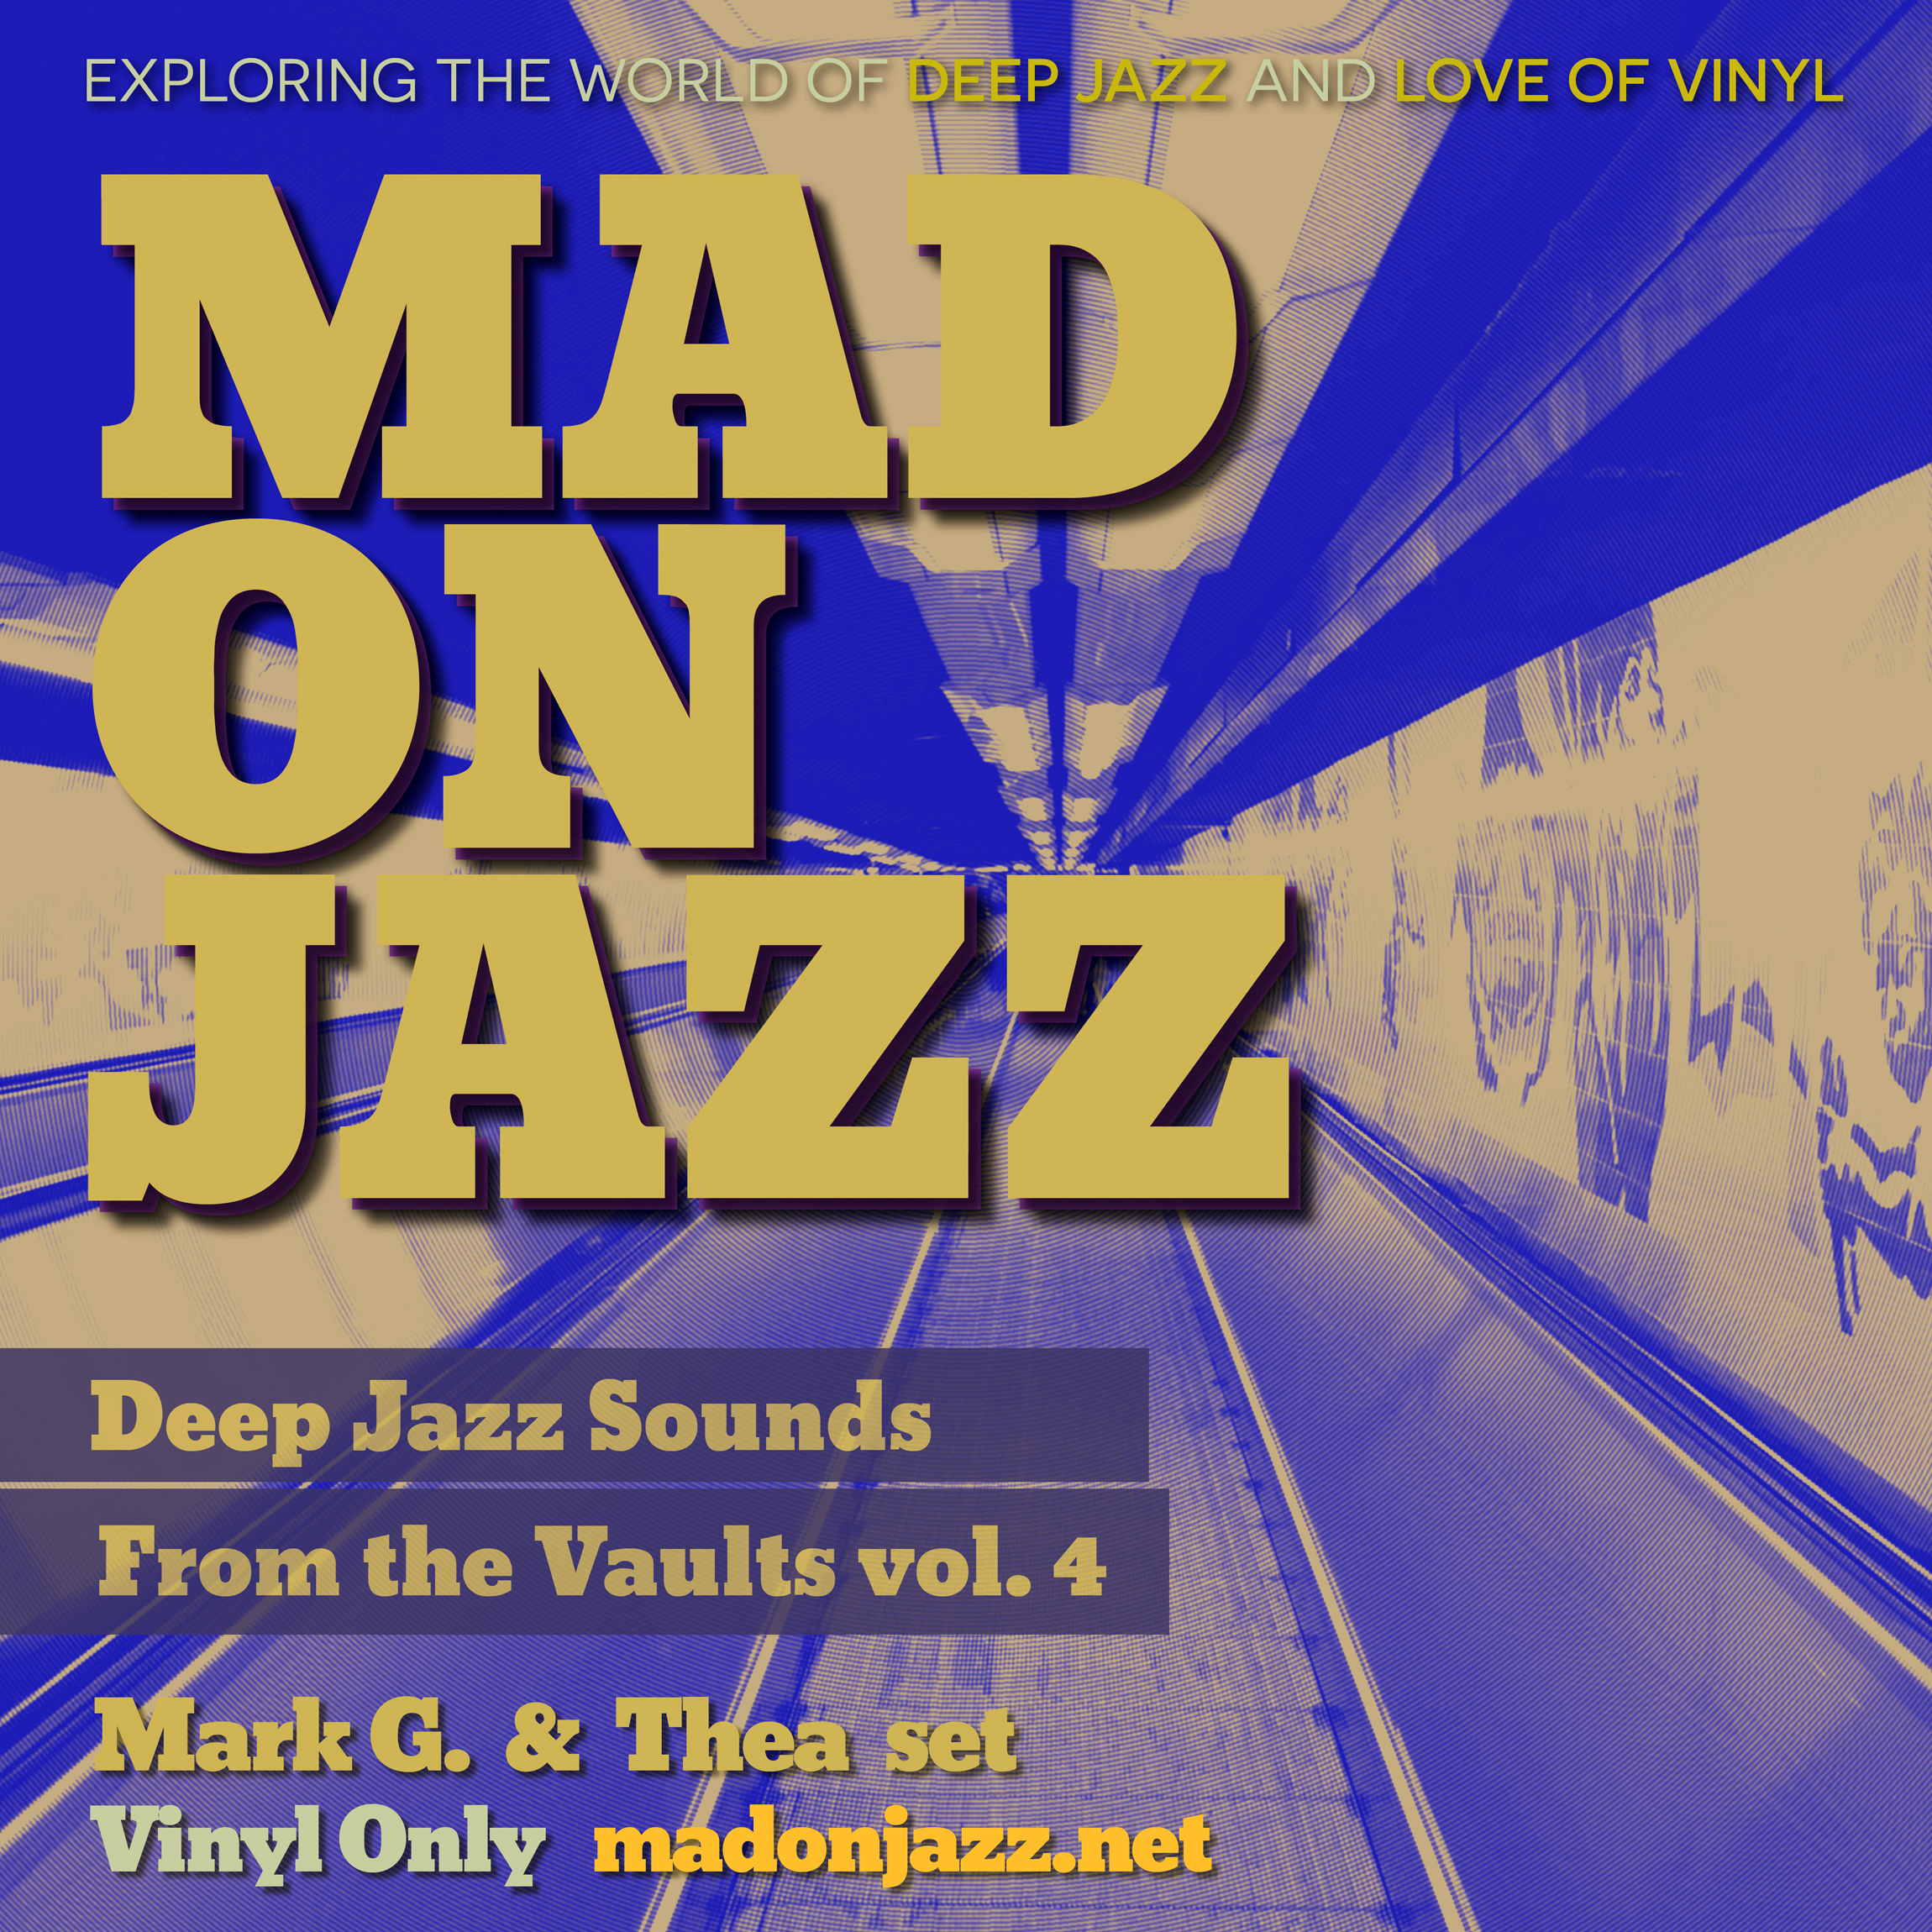 MADONJAZZ: Deep Jazz Sessions – From the Vaults vol 4